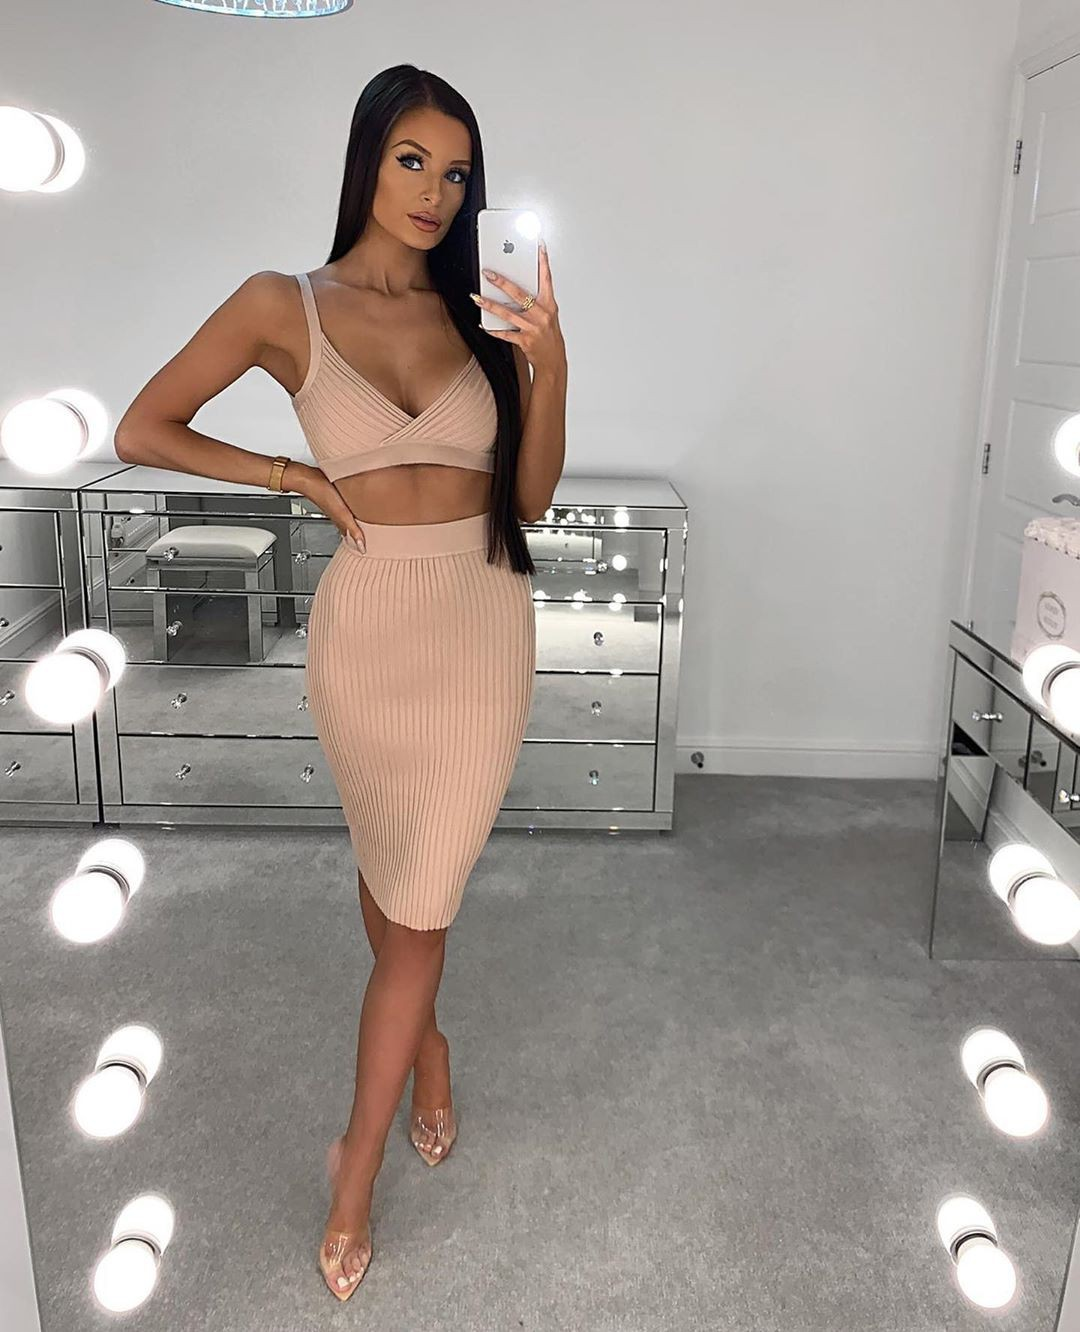 Wmpower women dress outfit ideas, legs pic, Sexy Models